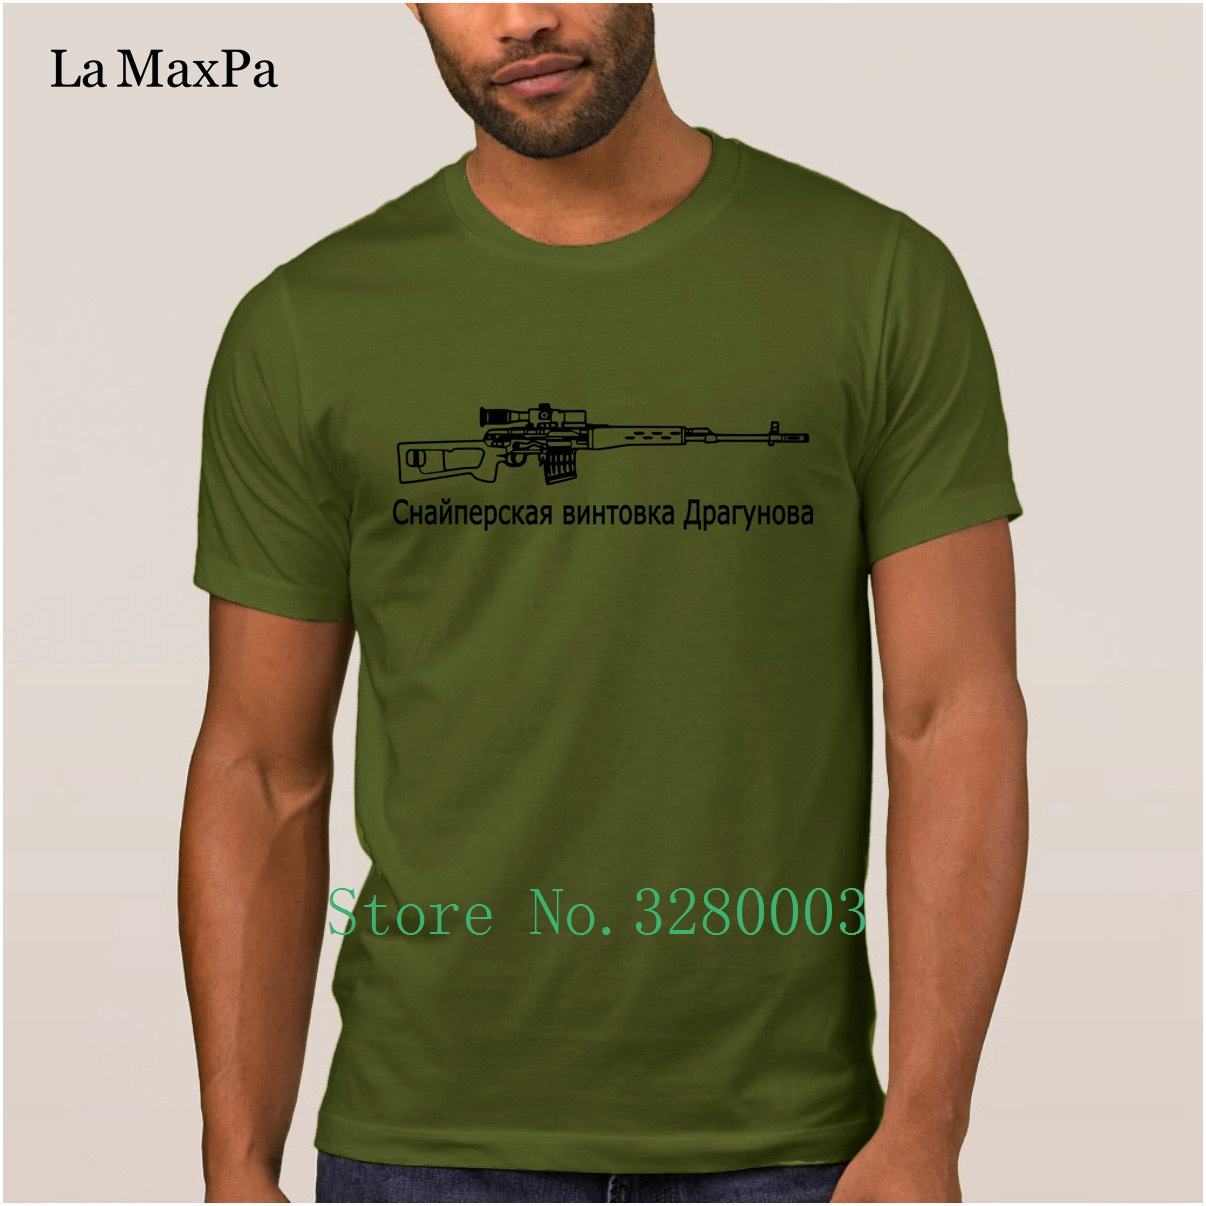 Order custom military shirts rushordertees com